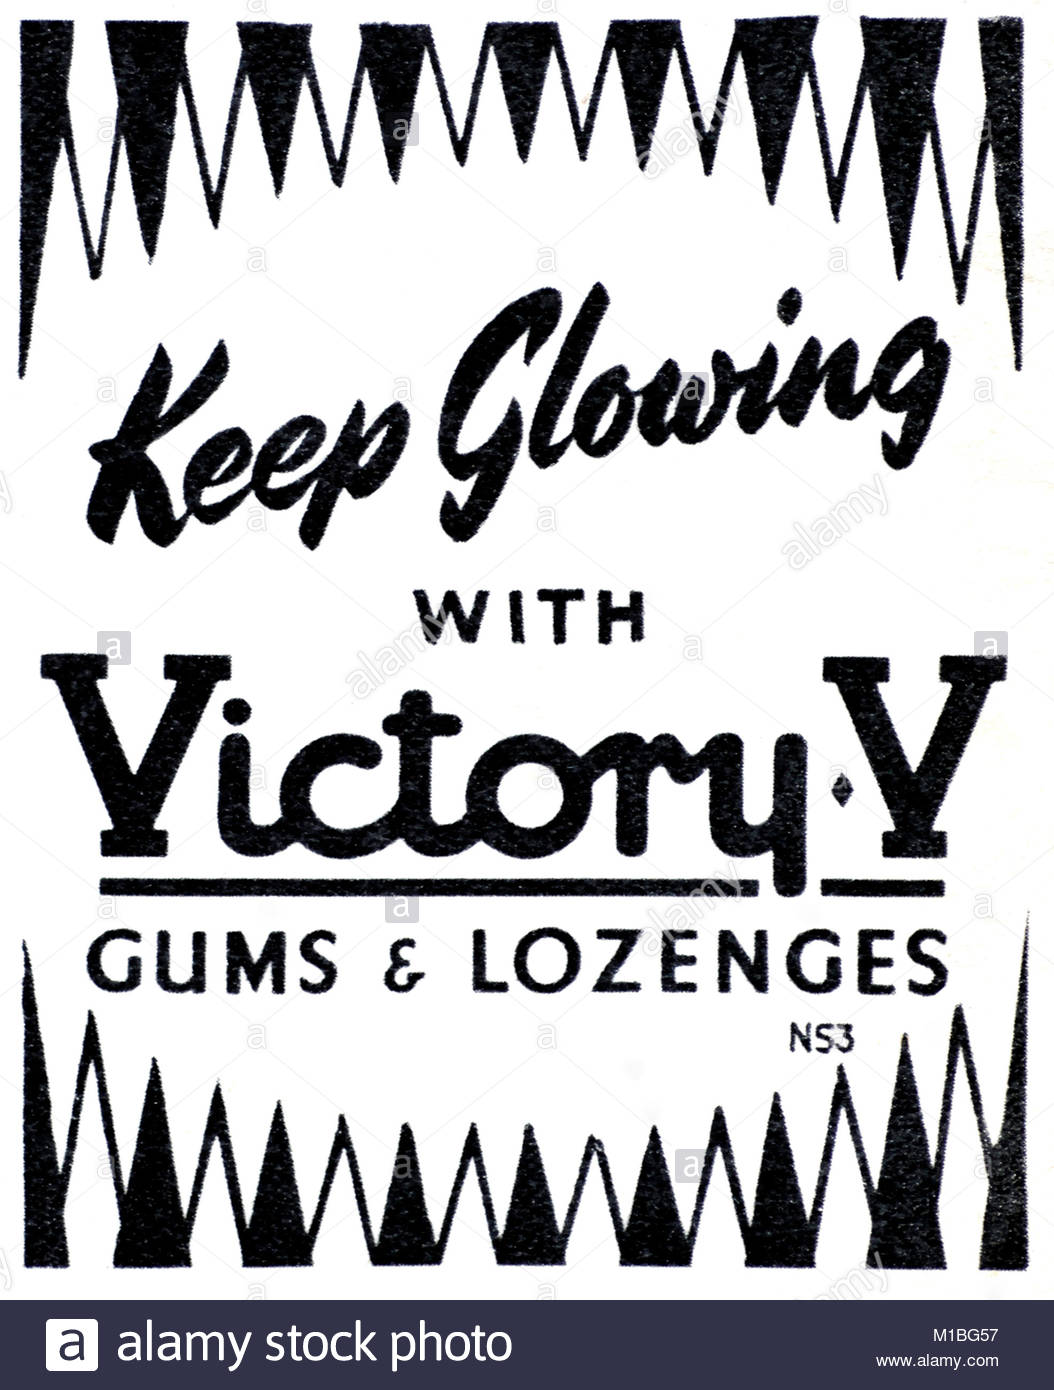 Victory V vintage advertising 1950s - Stock Image